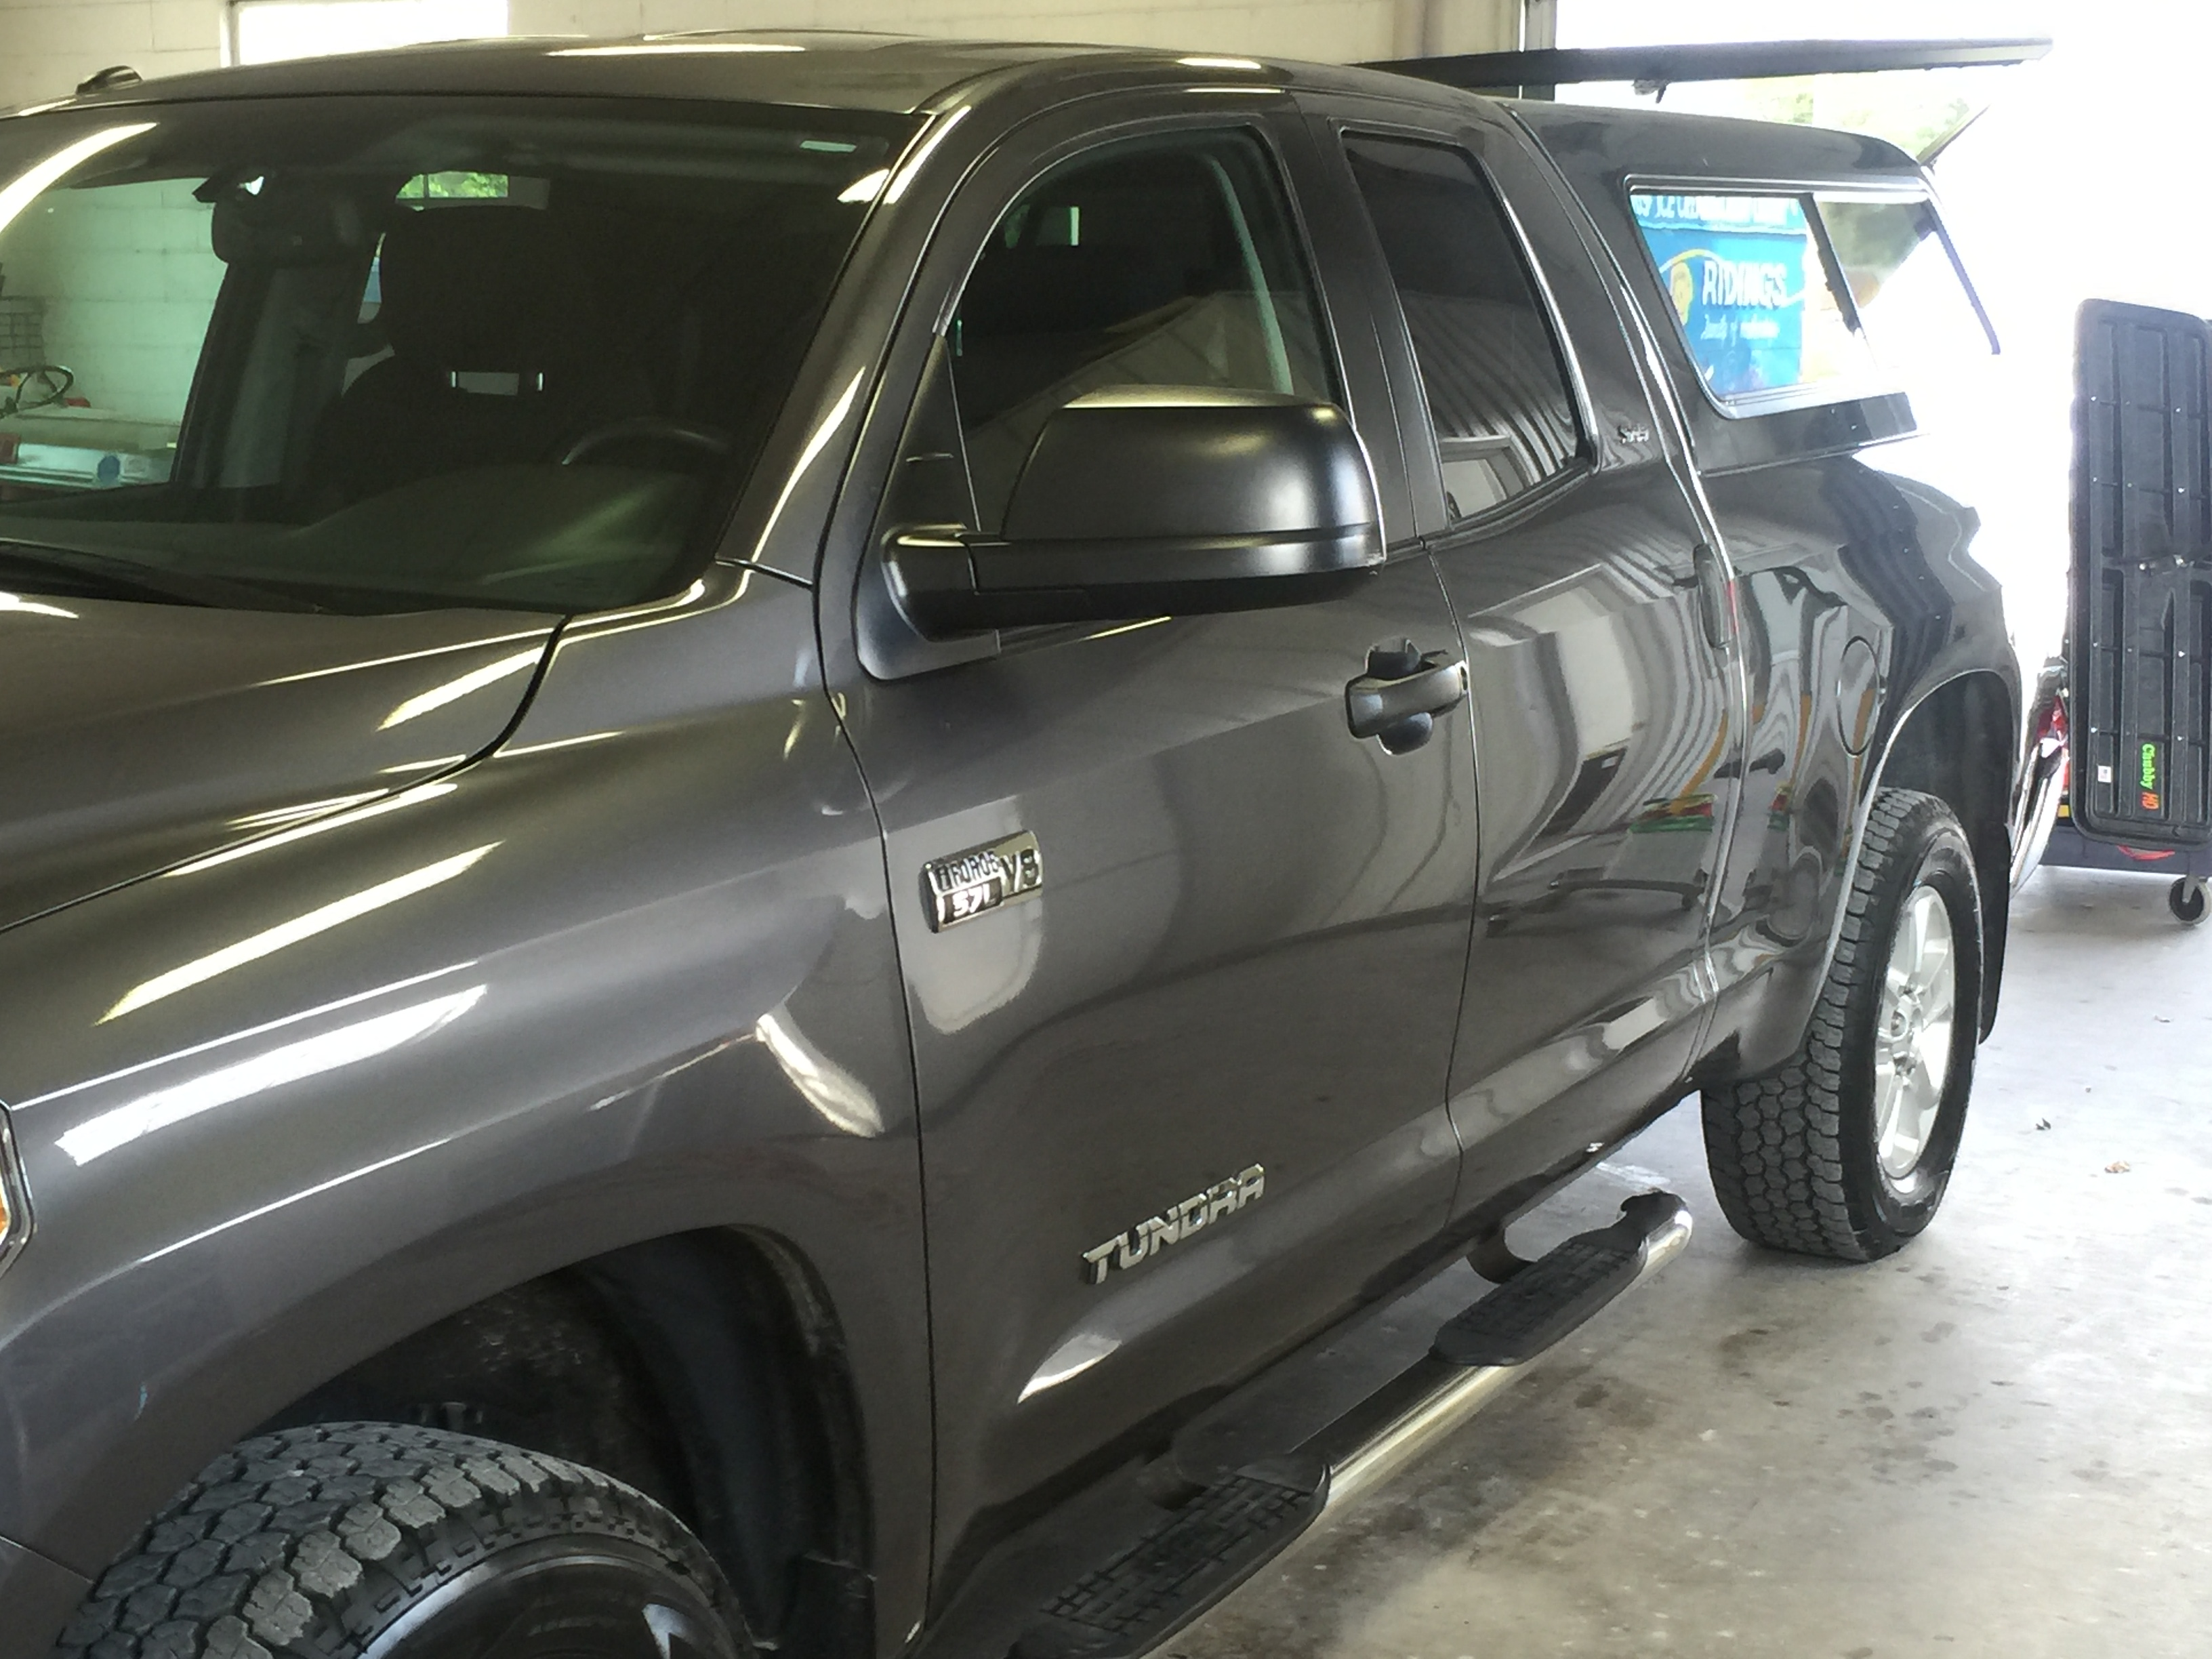 Dent Removal, Dent Repair, Dr. Dent. Springfield, IL 2014 Toyota Tundra bedside dent repair, Springfield, Decatur, Bloomington, Peoria, IL http://217Dent.com